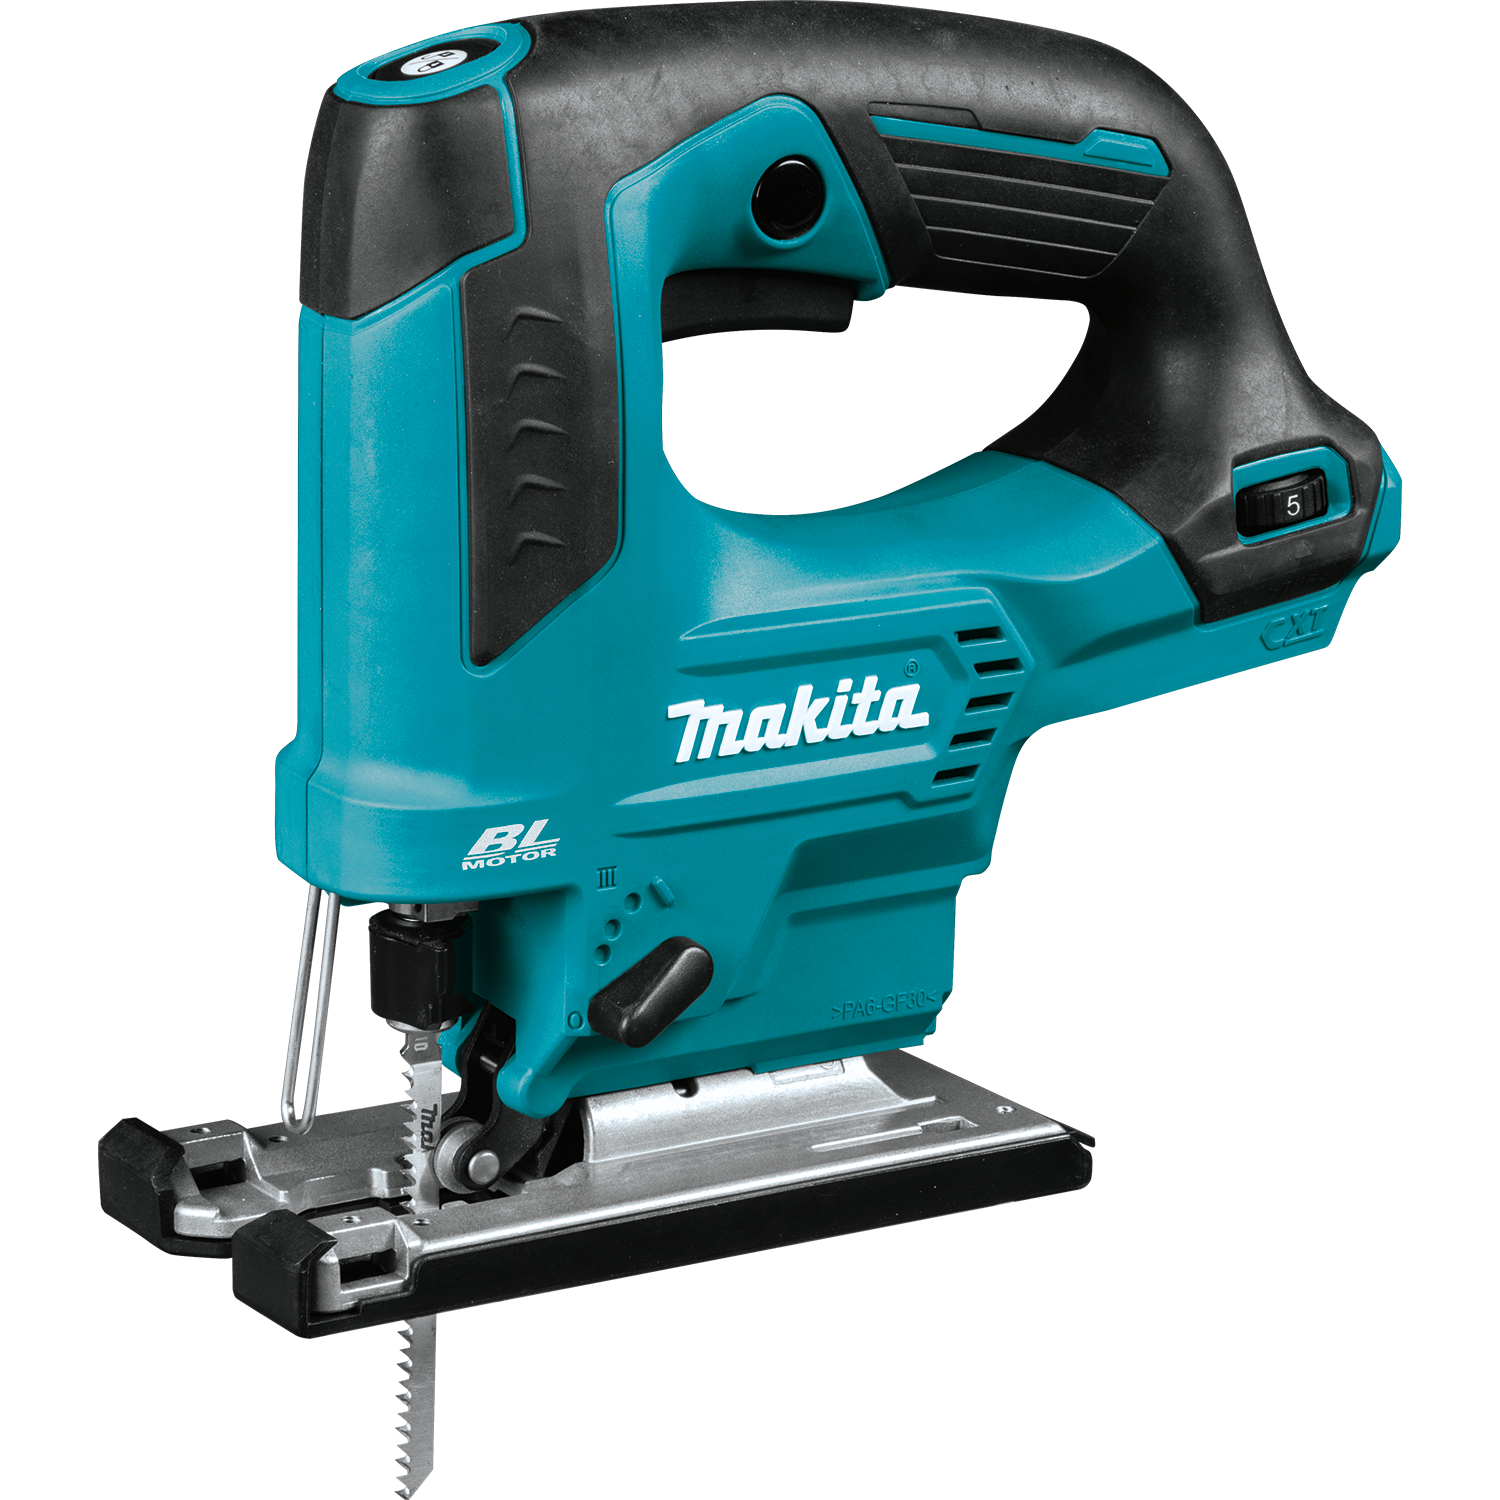 Makita usa product details vj06z vj06z greentooth Image collections